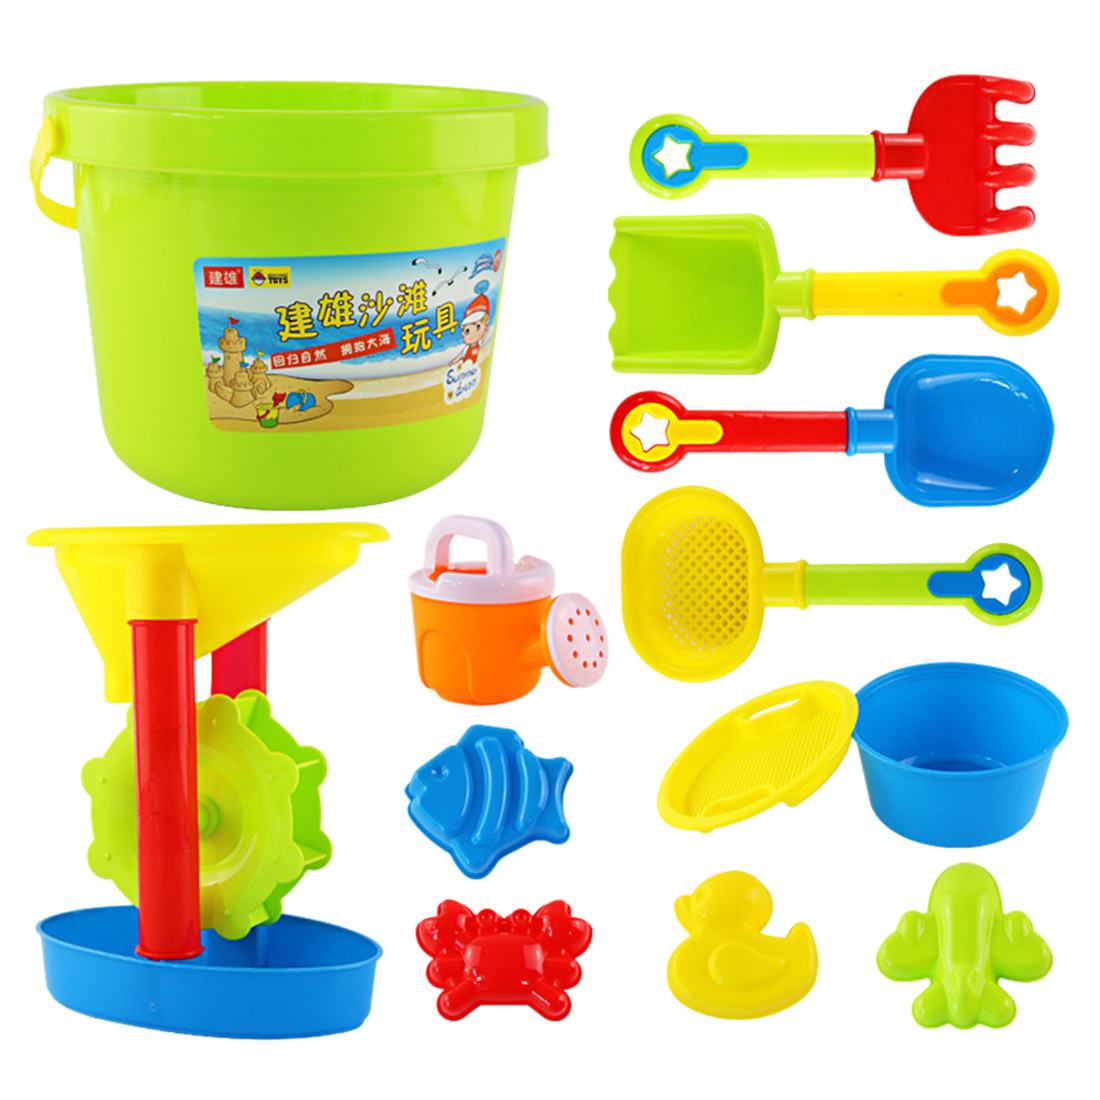 13Pcs Beach Toys Sand Play Mold Kettle Colander Shovel Set Educational Toy With Large Bucket And Hourglass For Children